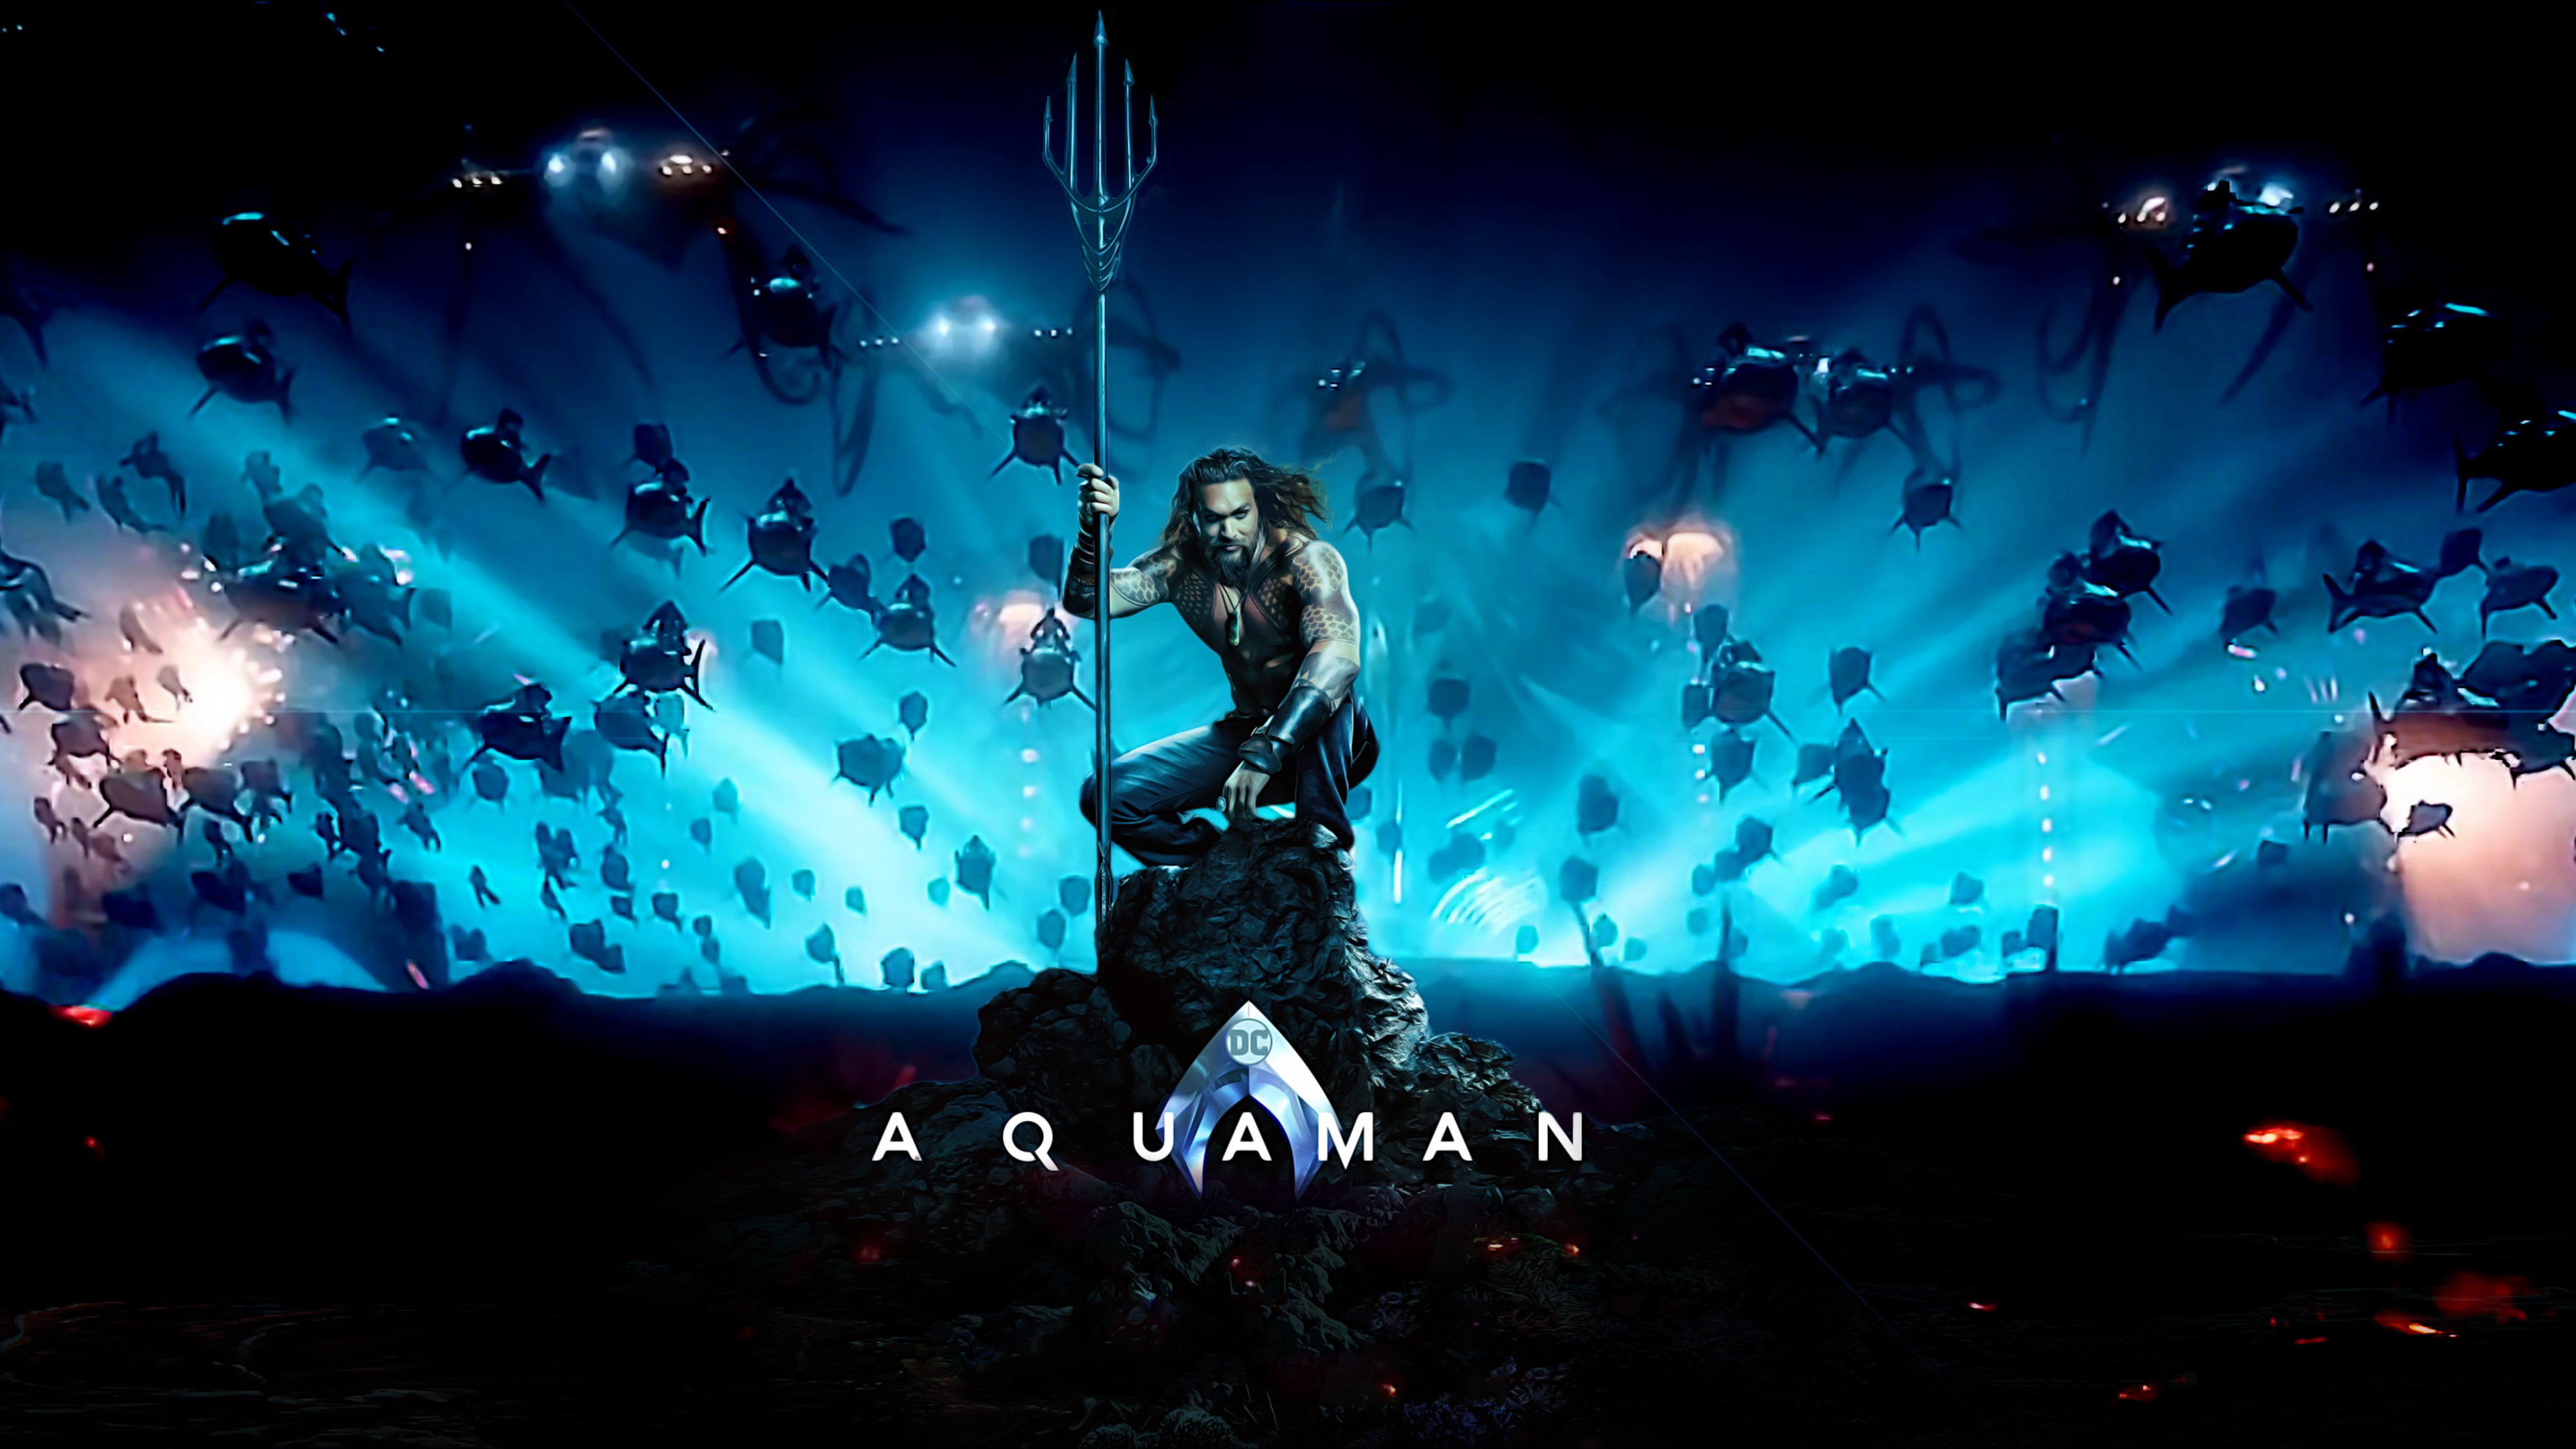 3840x2160 Aquaman Movie Poster 4k Hd 4k Wallpapers Images